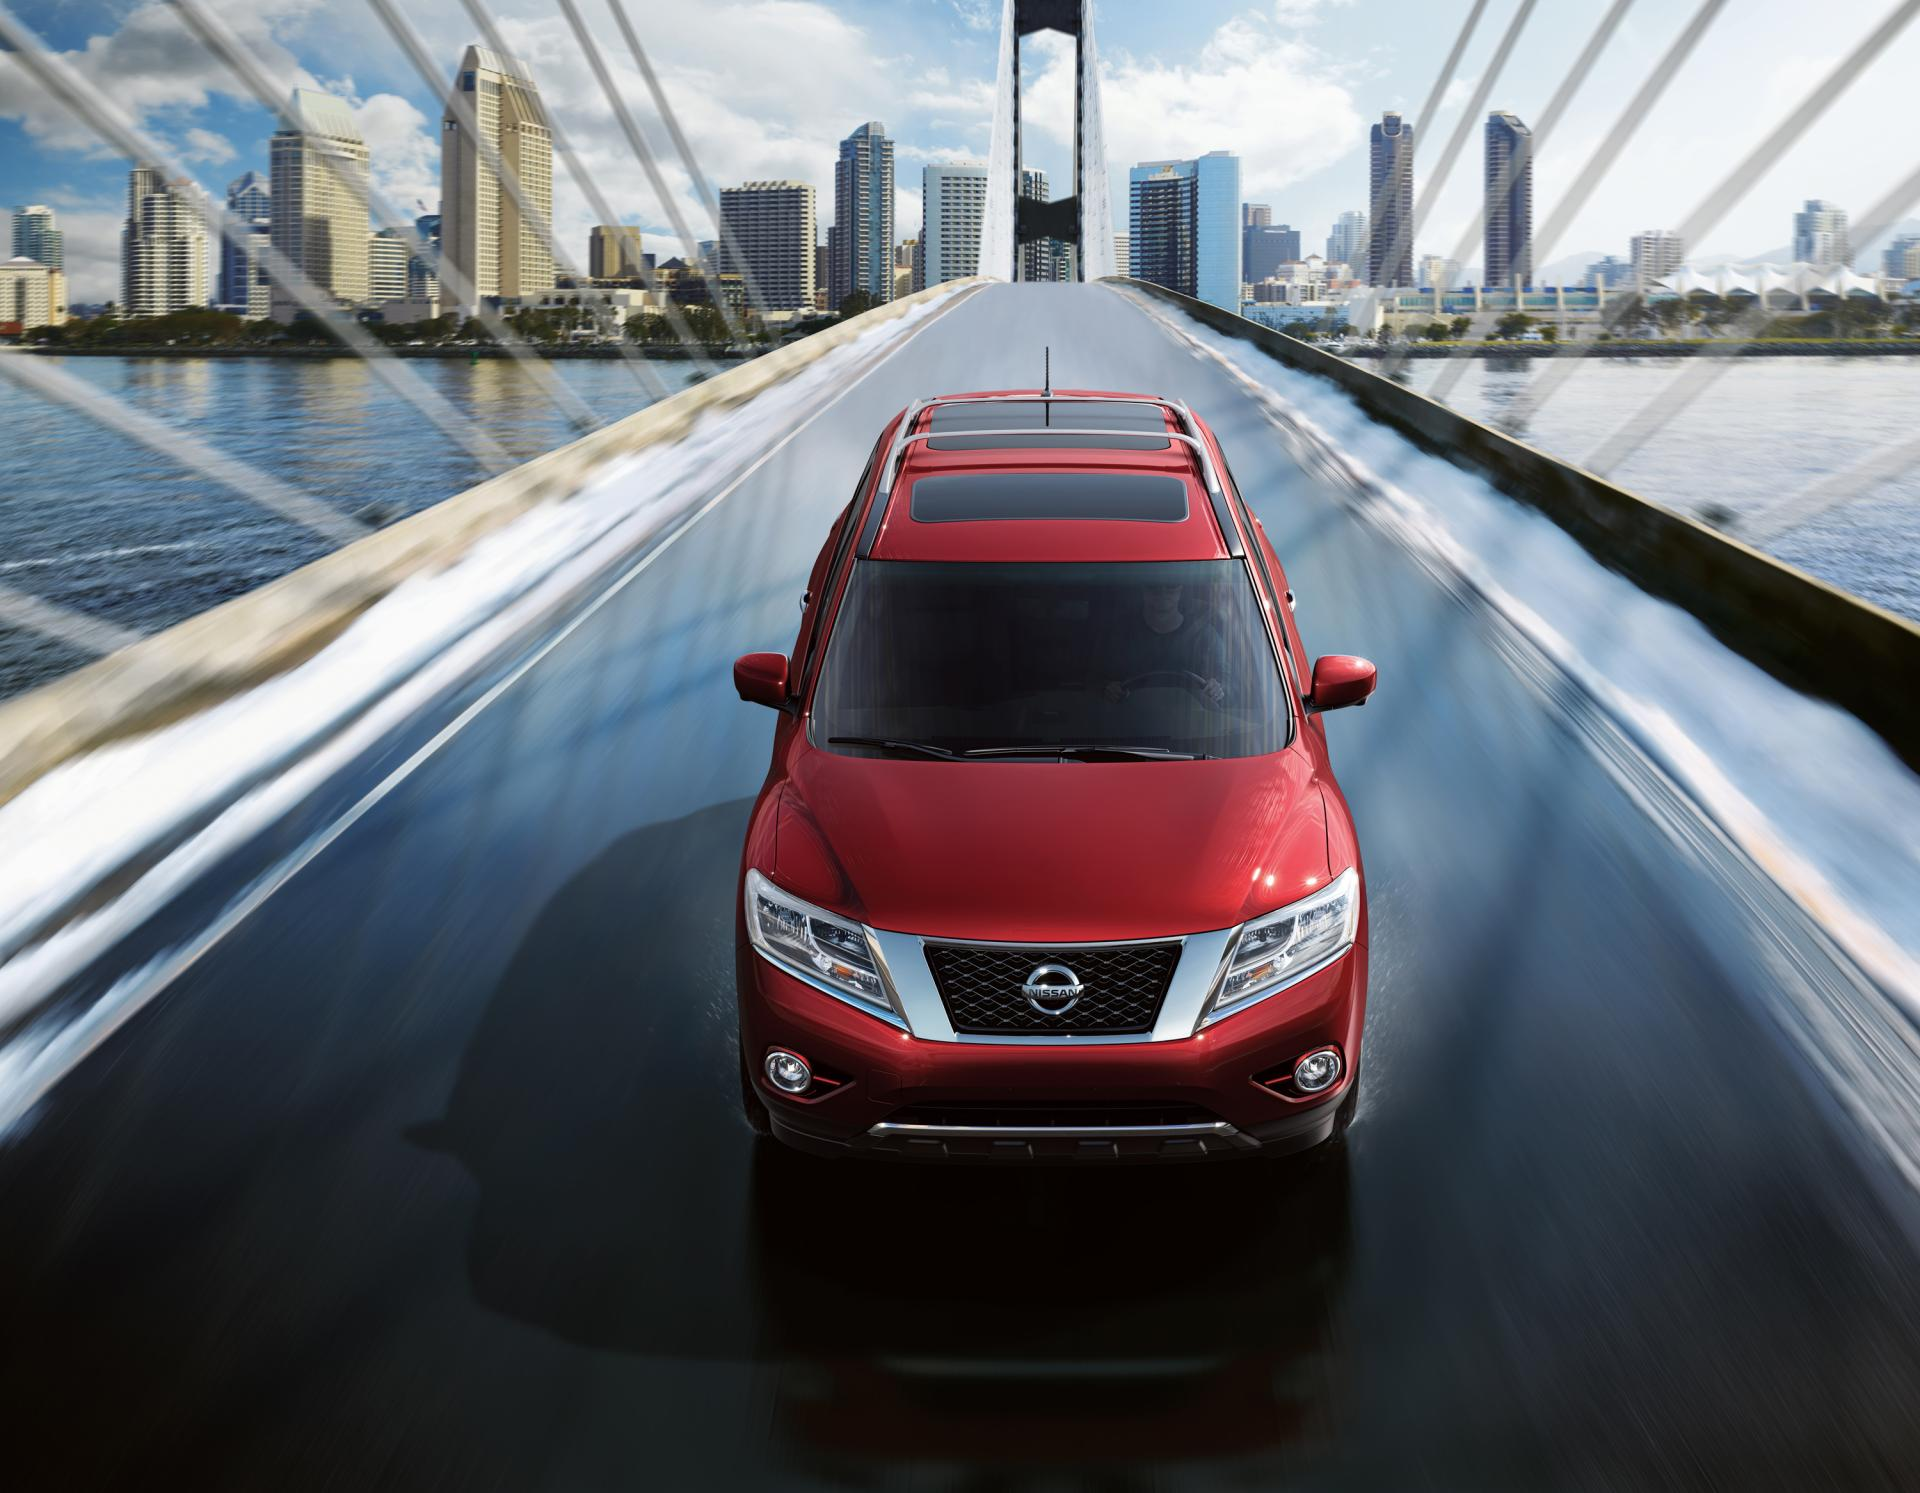 Nissan models images wallpaper pricing and information nissan pathfinder concept vanachro Images